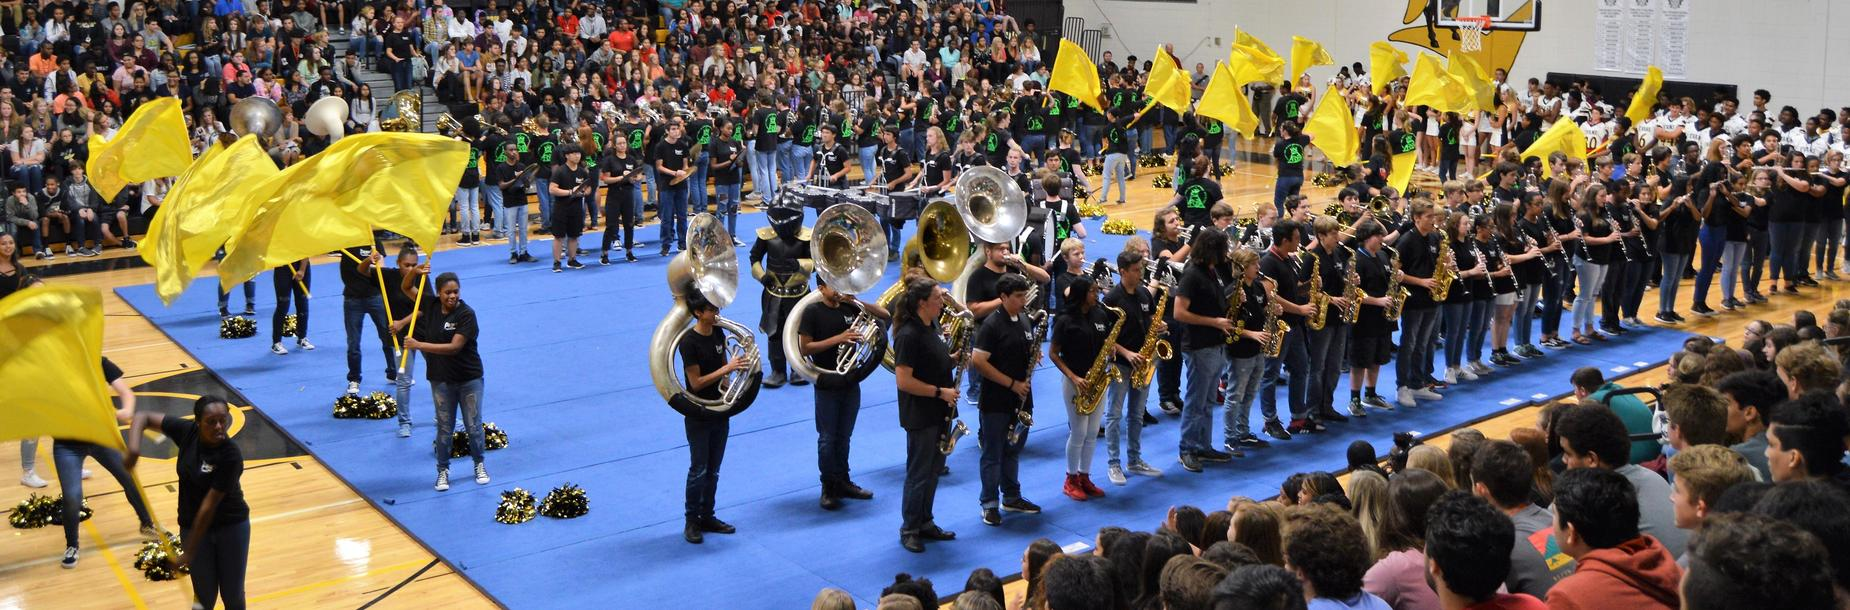 band at pep rally